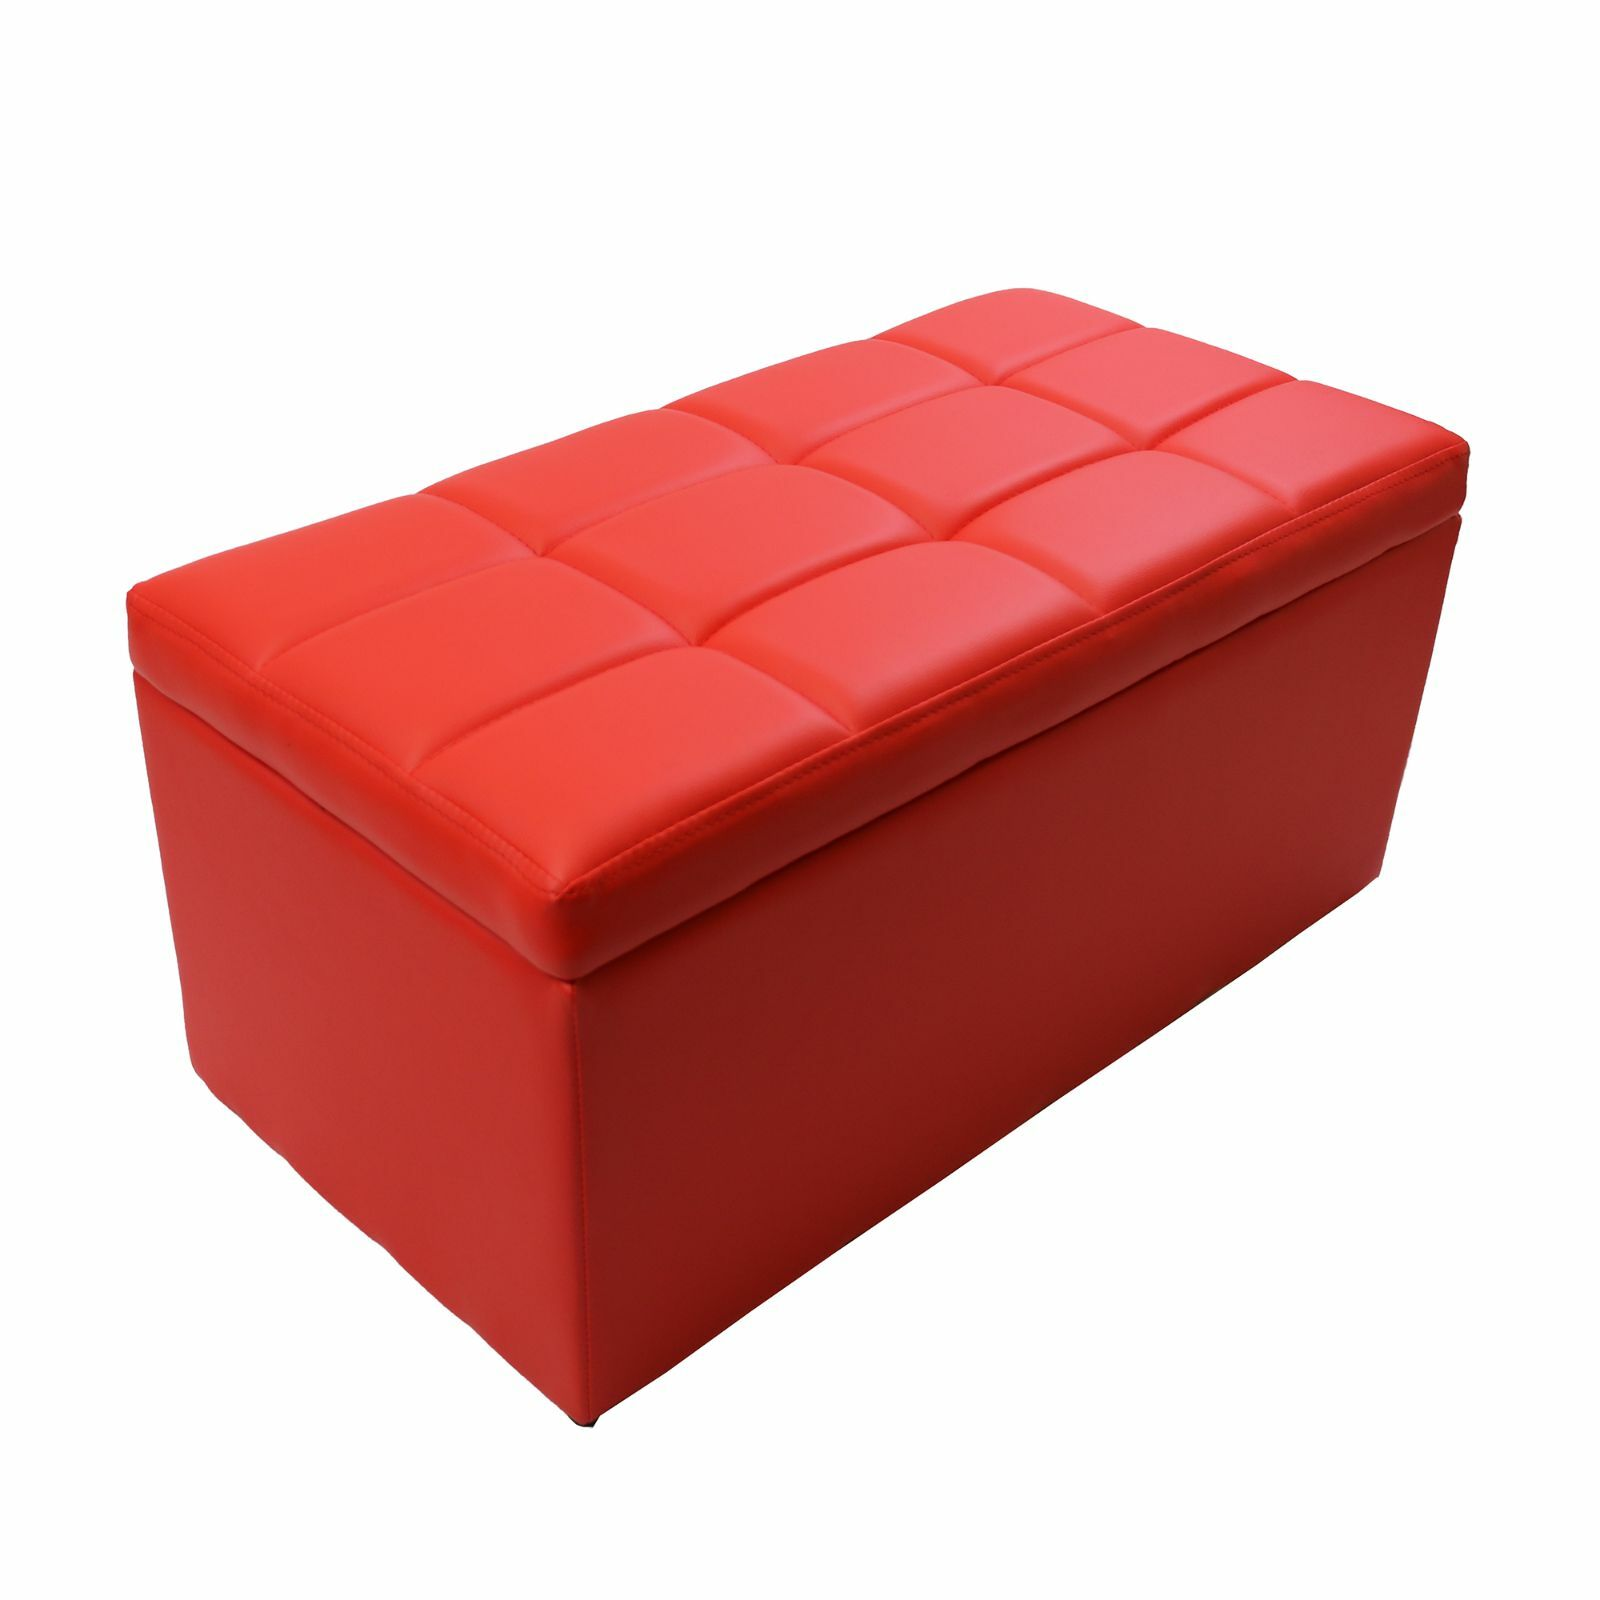 #4F0400 Living Storage Ottoman Bench Footstools Seat Table Cocktail 31 L  with 1600x1600 px of Recommended Ottoman Bench Seats 16001600 save image @ avoidforclosure.info